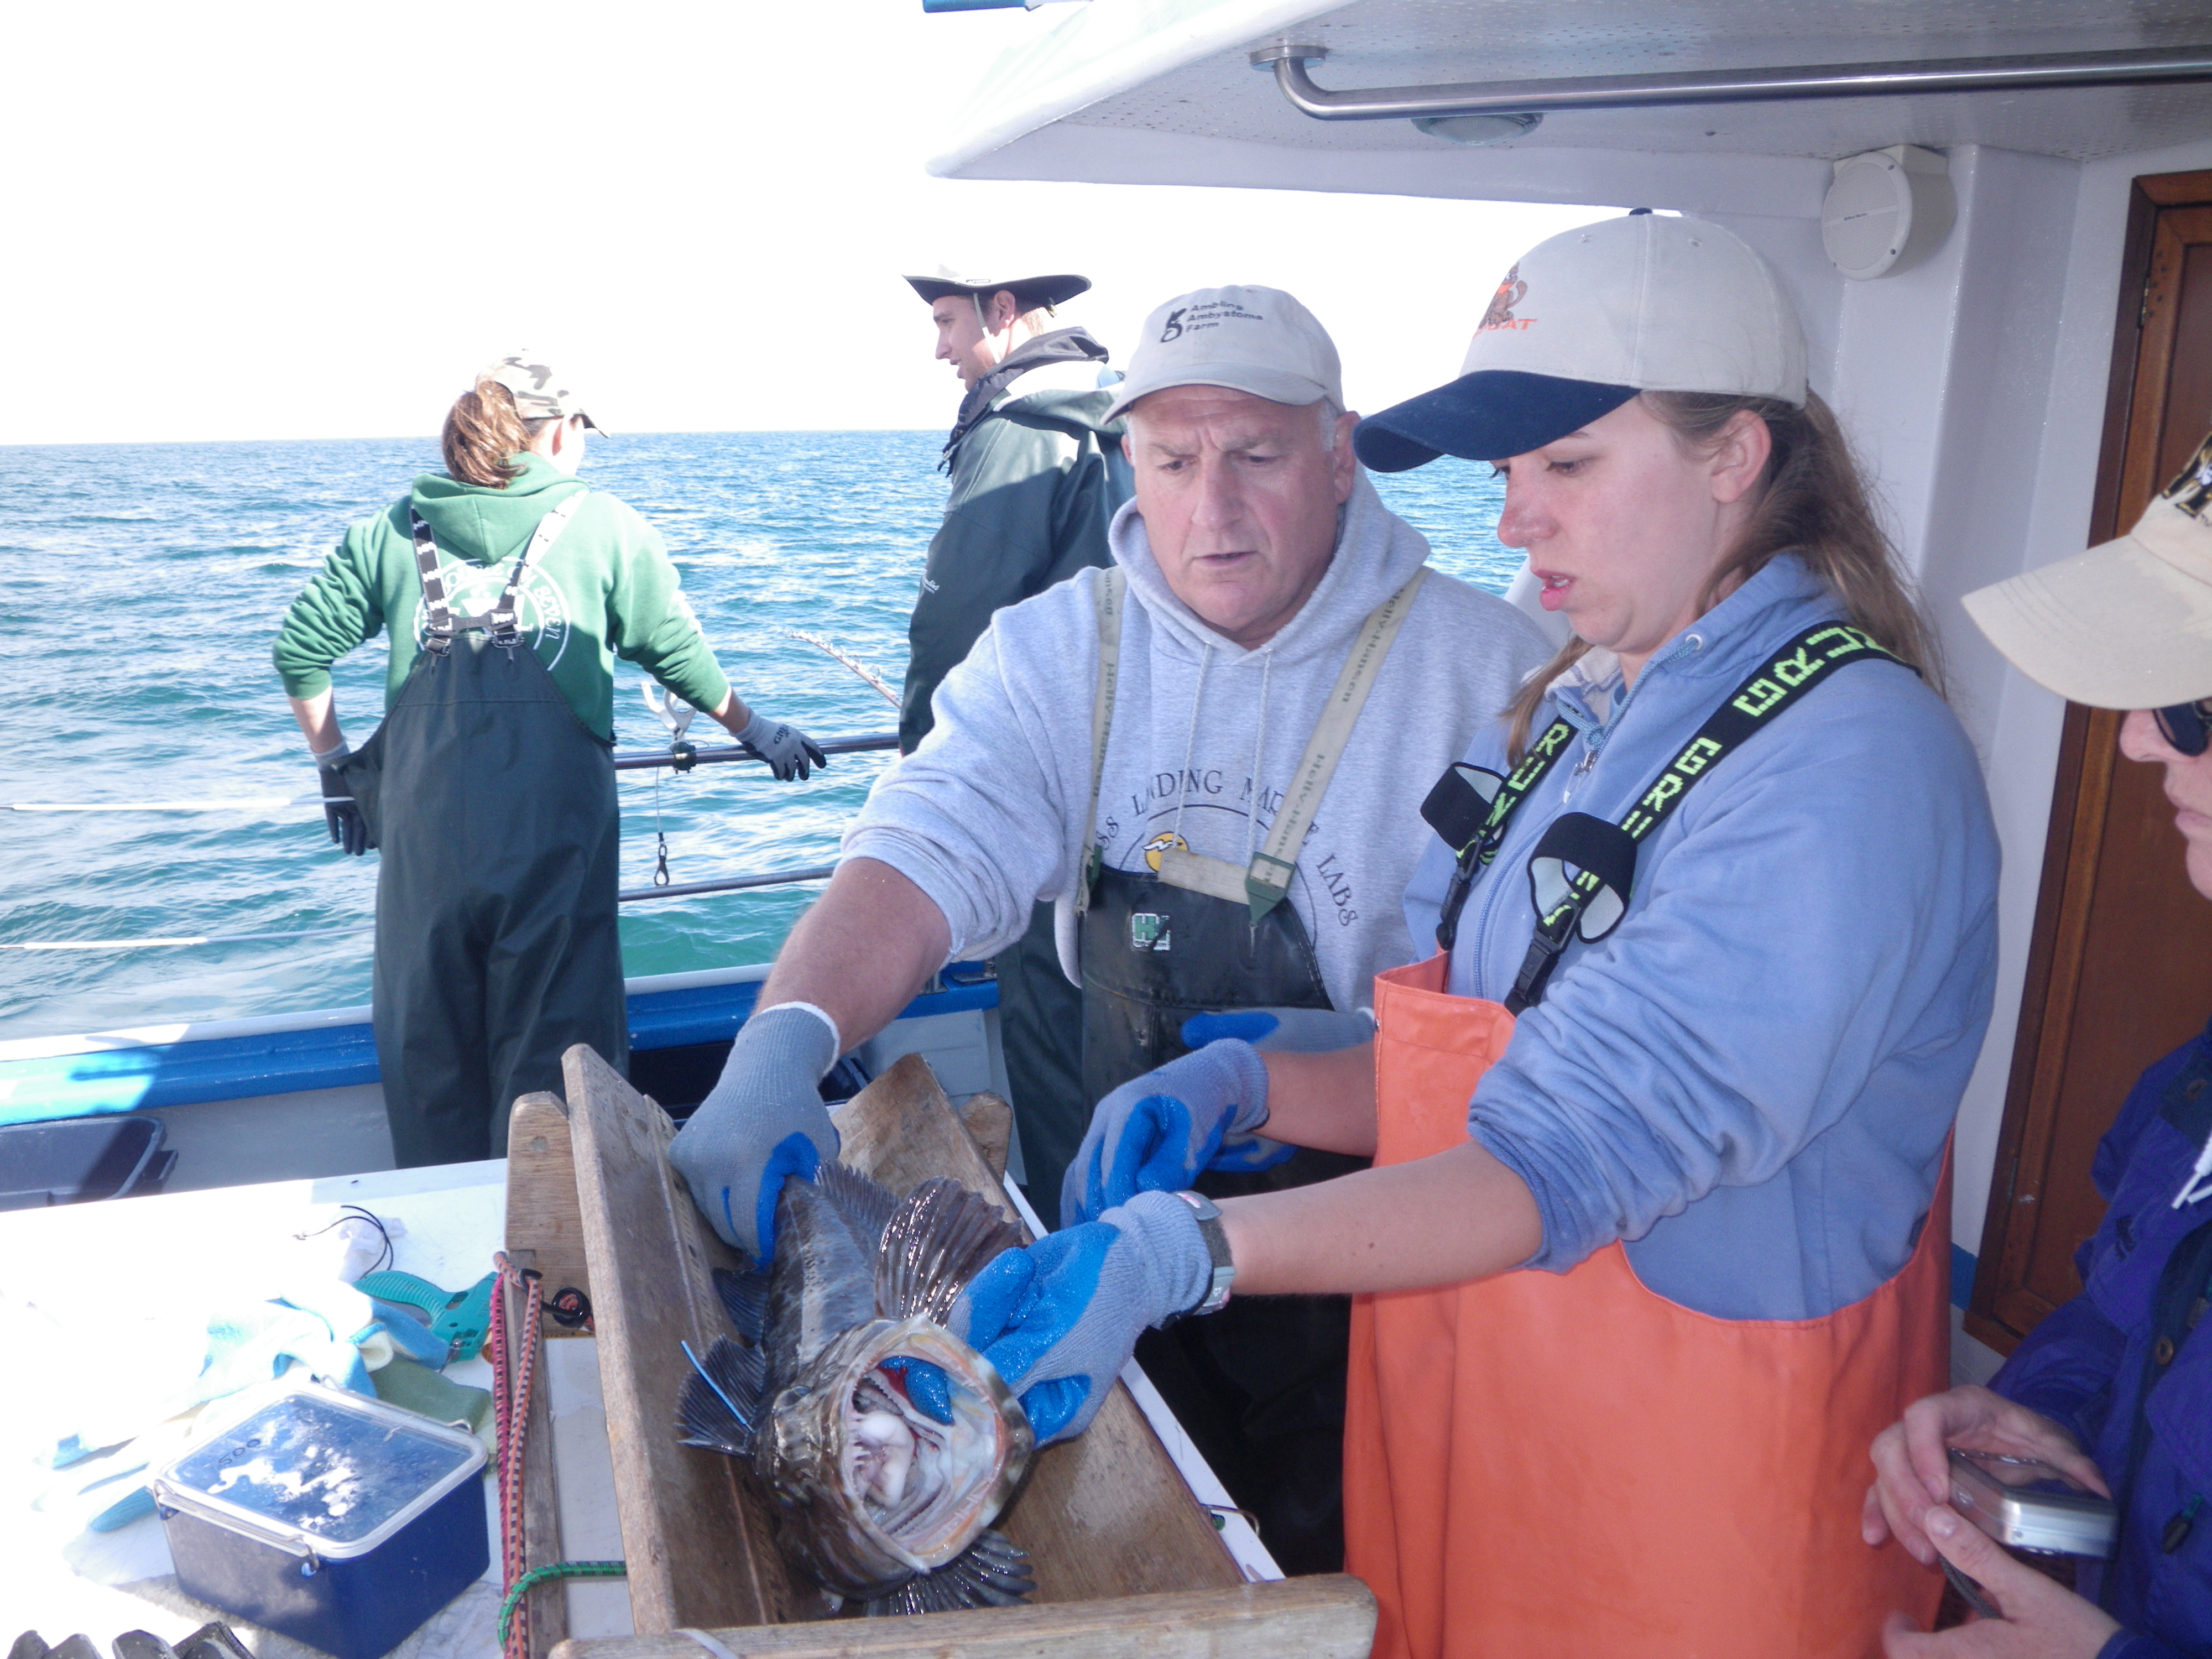 Rick Starr and Andrea Launer identifying the sex of a tagged lingcod.